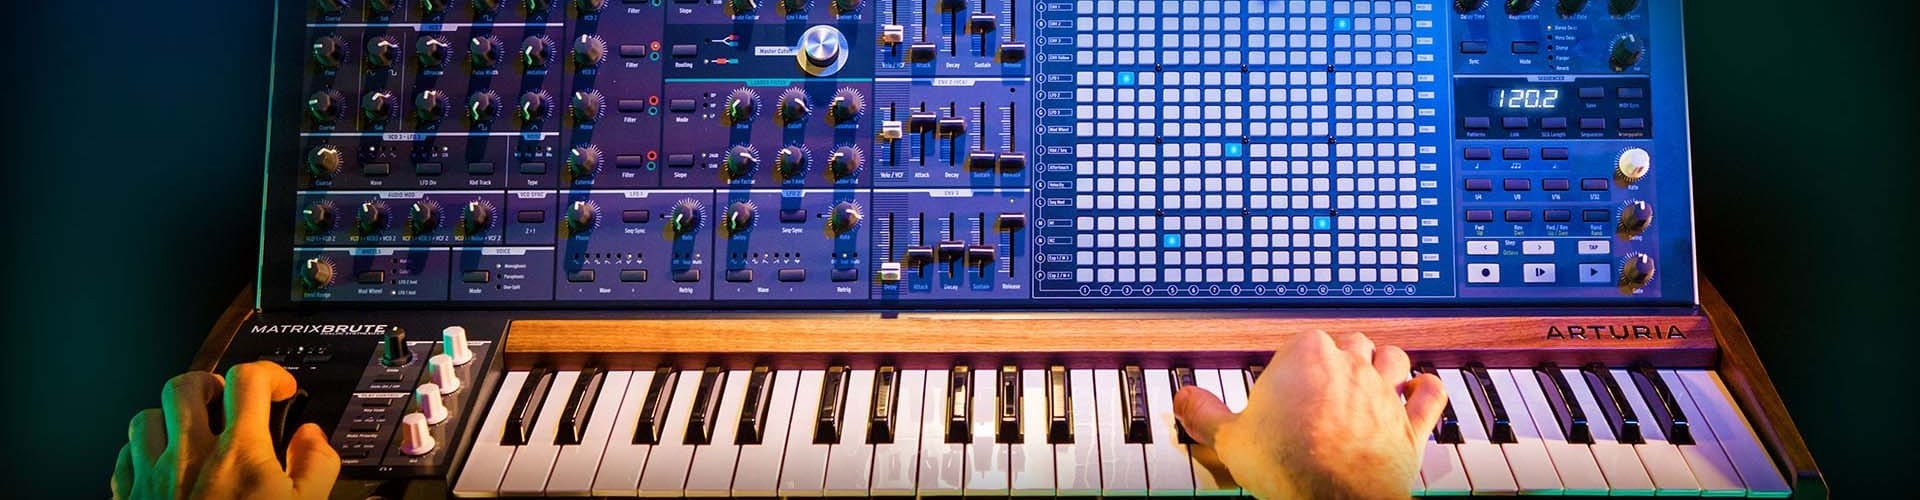 Best Hardware Synths Reviewed in Detail [Feb. 2020]